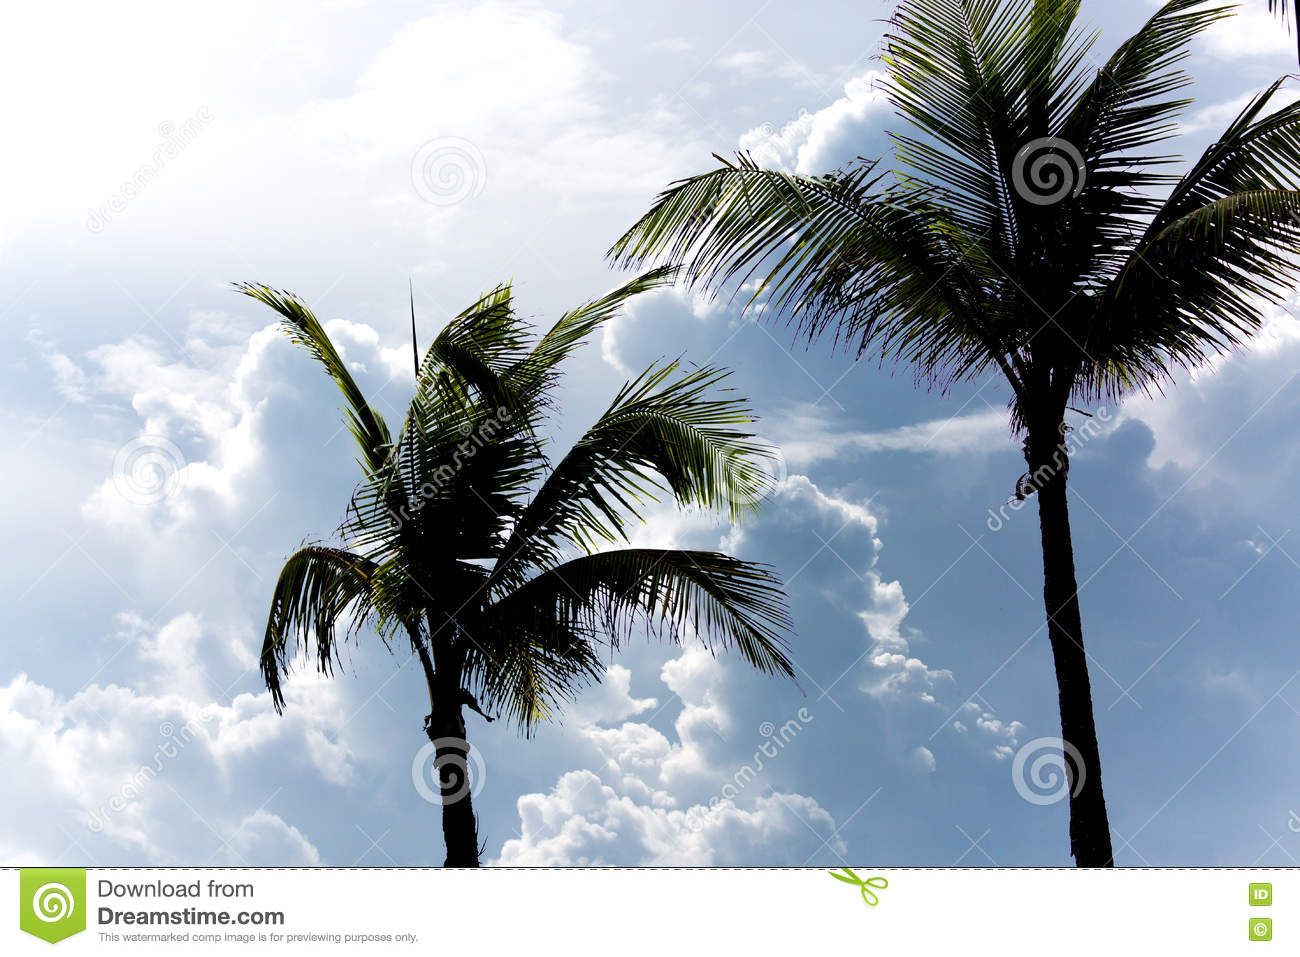 Palm Trees and Thick Clouds